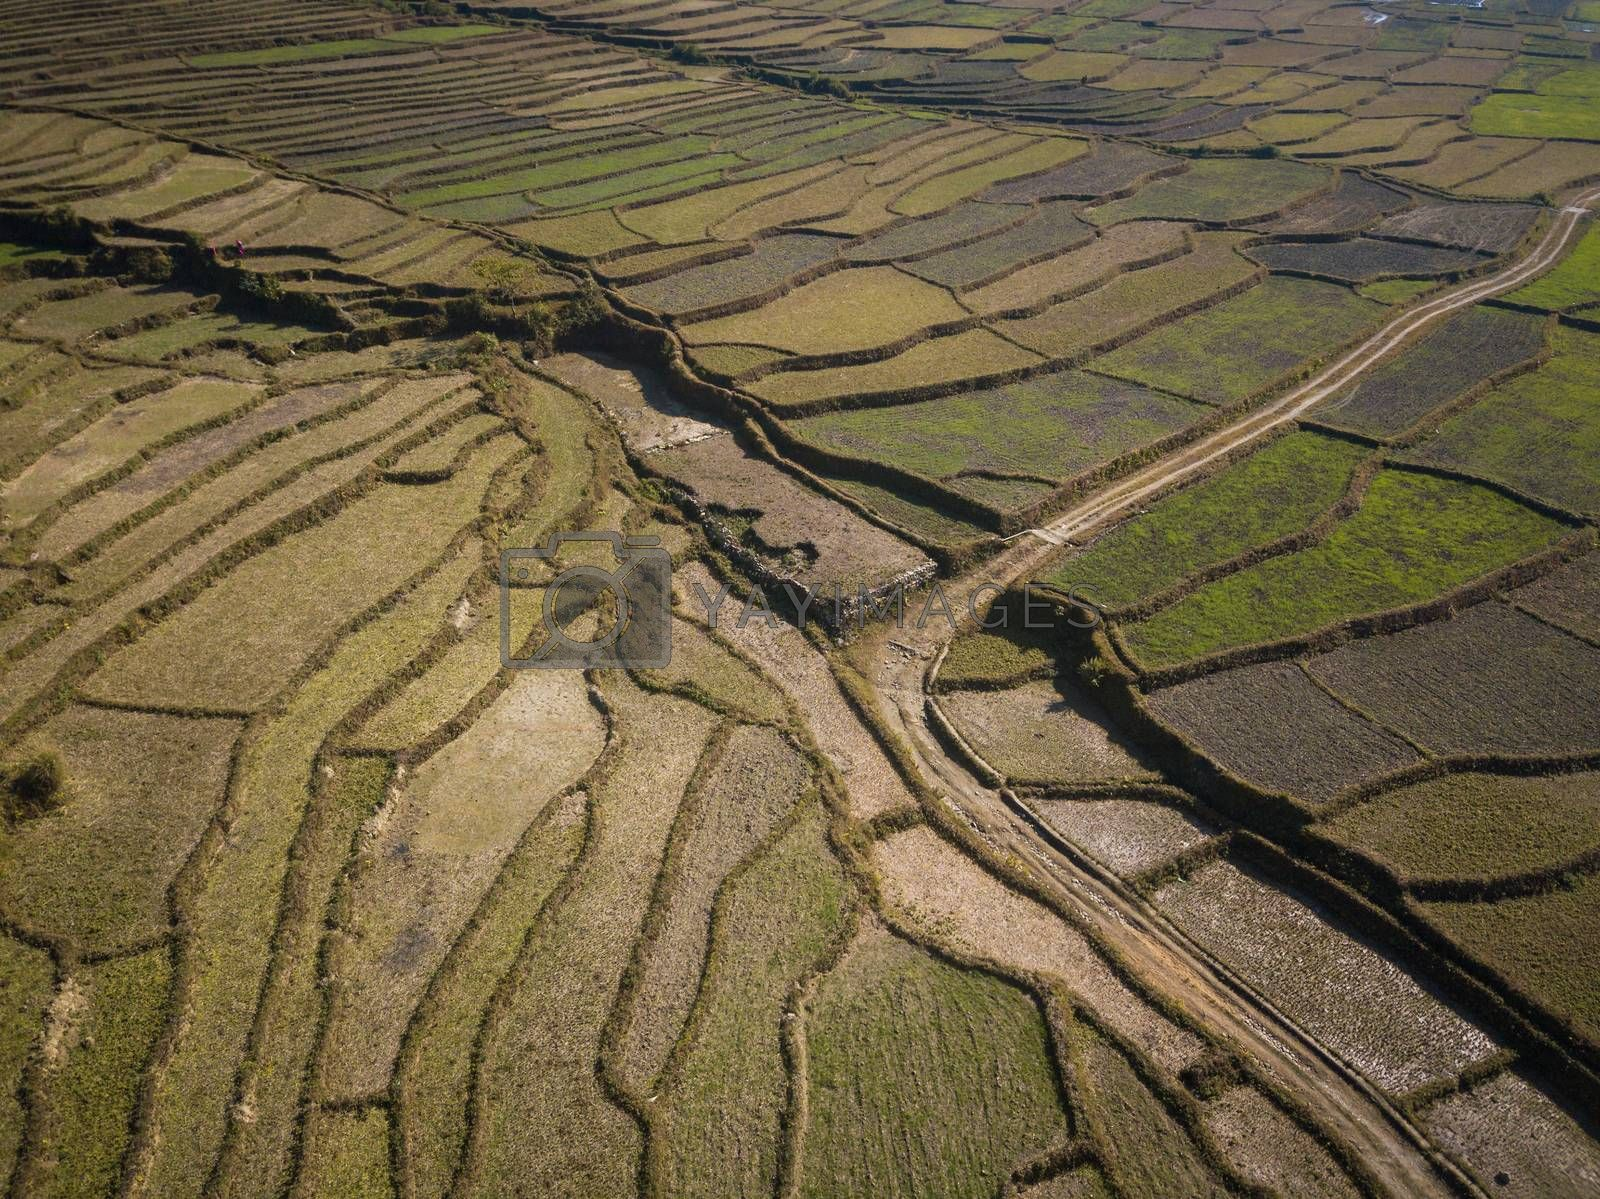 Aerial view of paddy fields in winter, Nepal